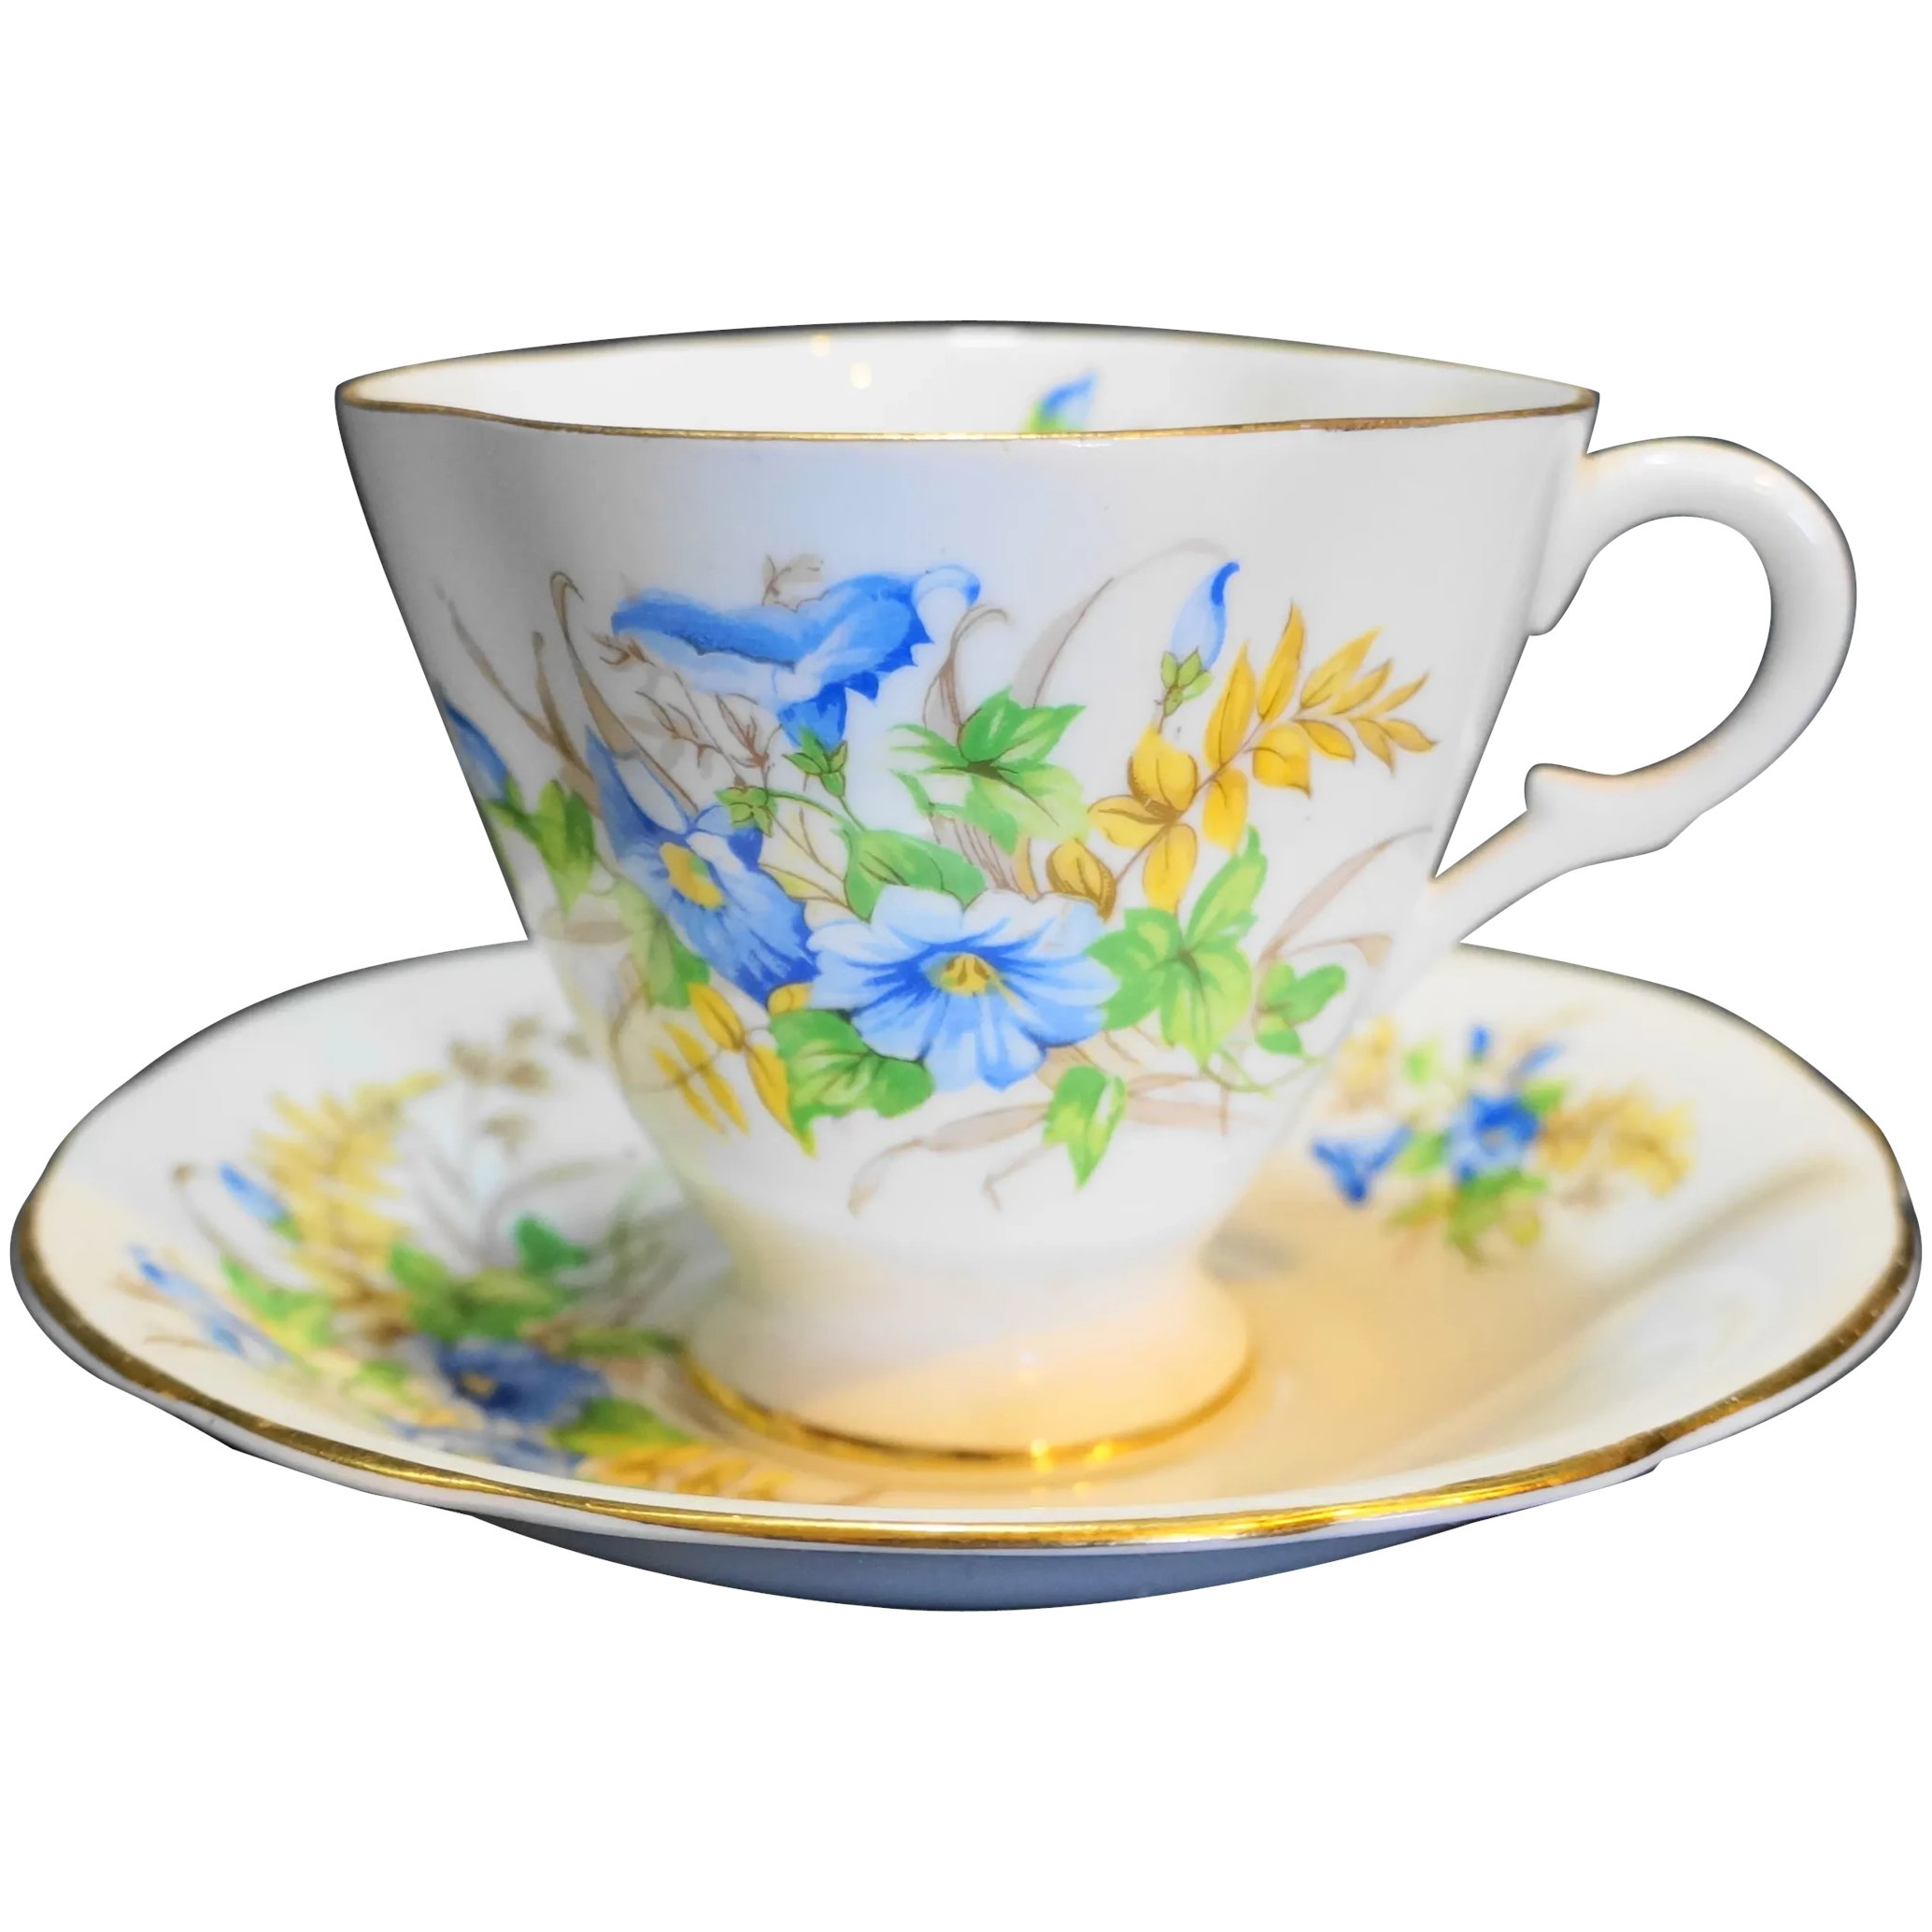 Clarence Bone China Blue Flowers Cup Saucer England Hoosier Collectibles Ruby Lane